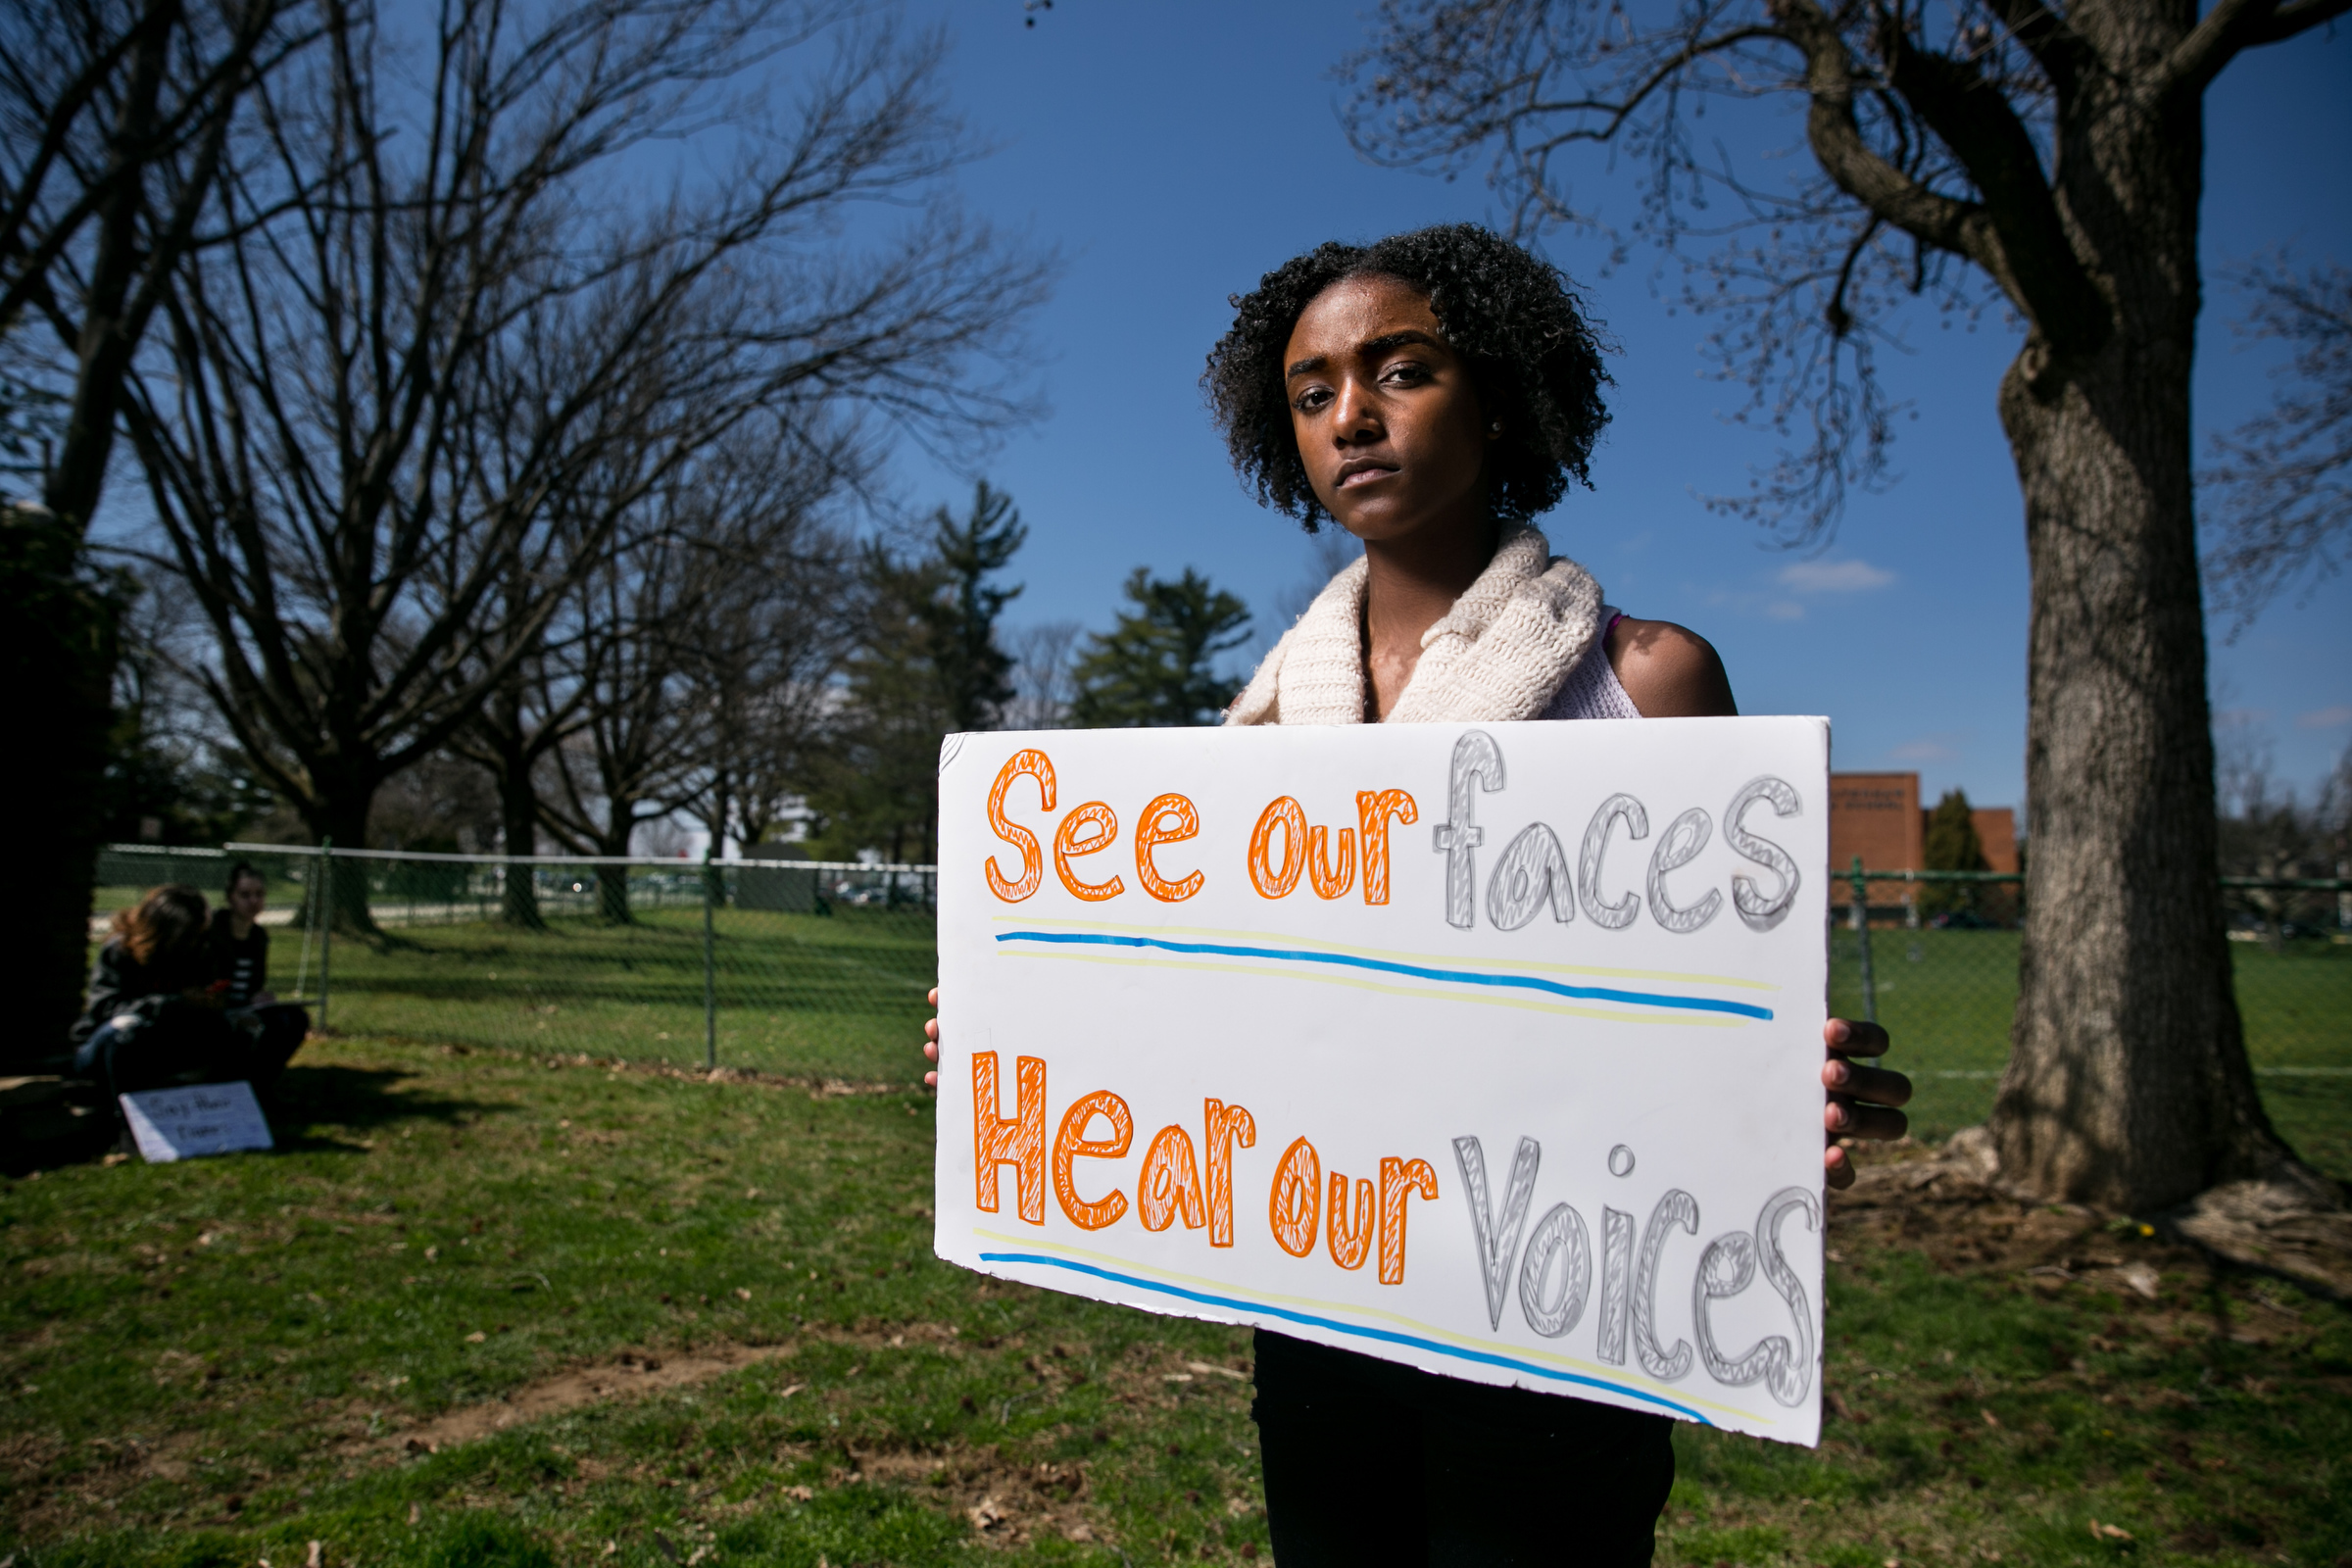 Eryn Banton, a lead organize of students concerned about gun violence, shown here in front of Cheltenham High School, Wednesday, April 18, 2018. JESSICA GRIFFIN / Staff Photographer.